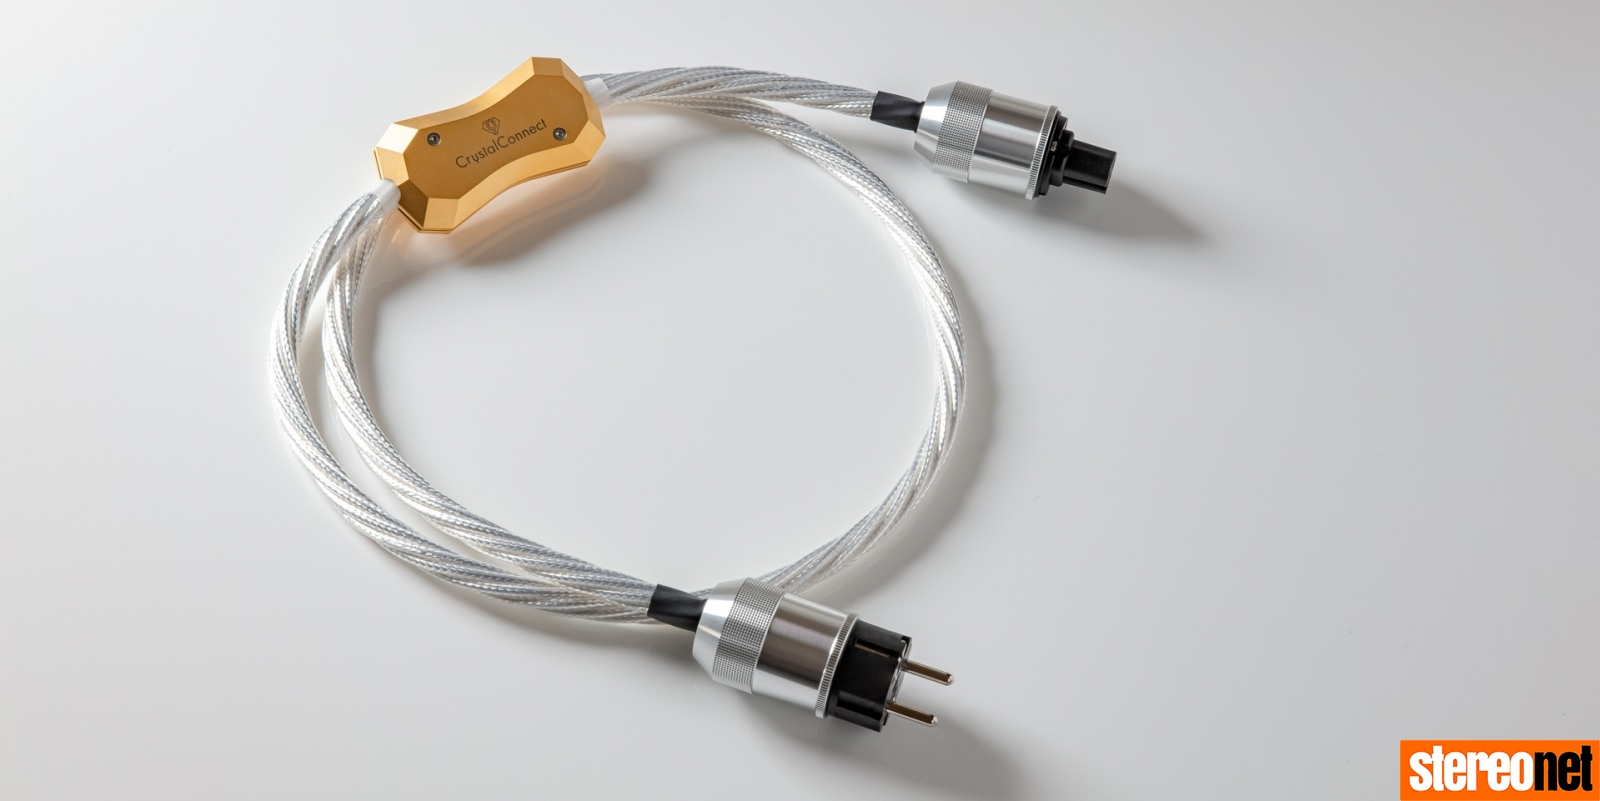 CrystalConnect Art Cable